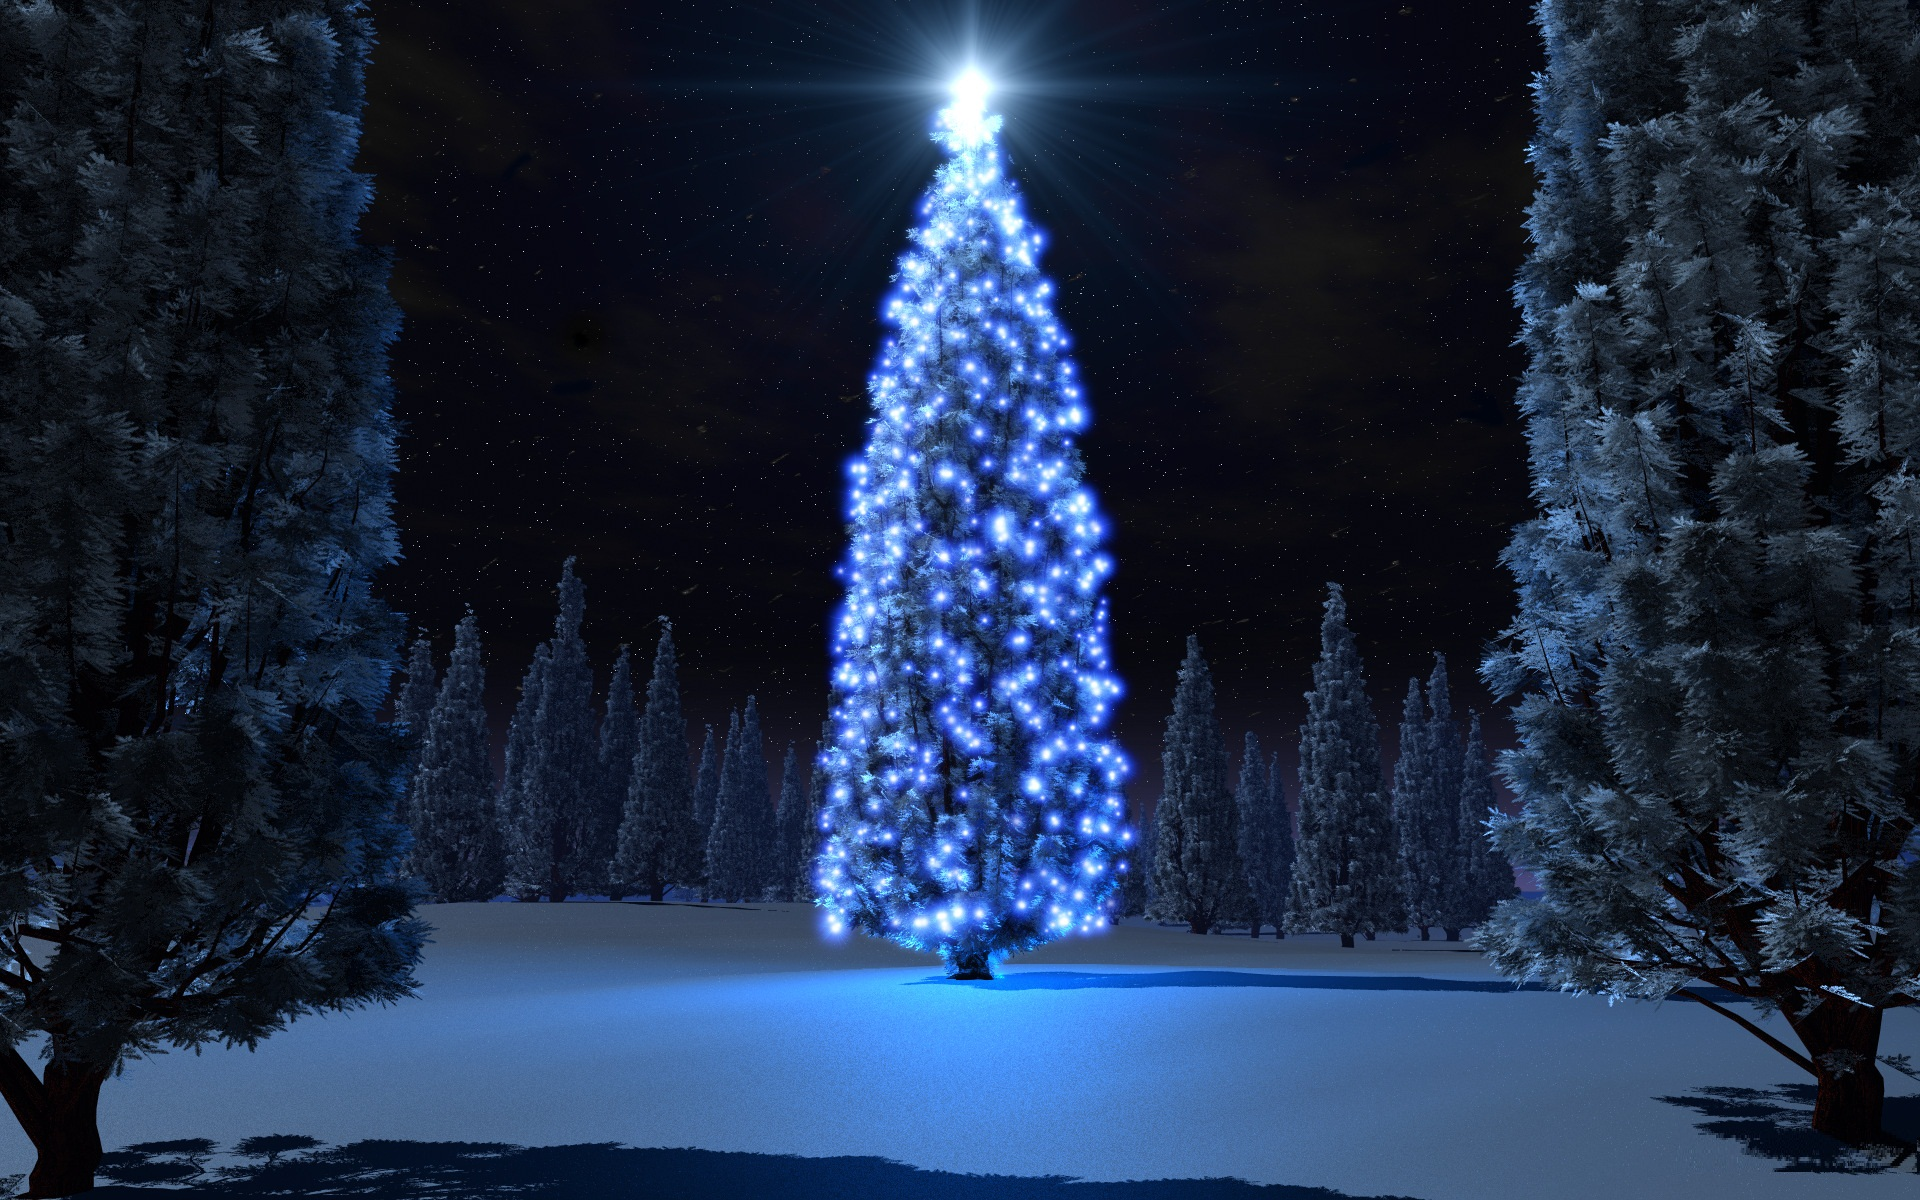 live-christmas-wallpaper-android-20140731074034-53d9f2f2dd7d4